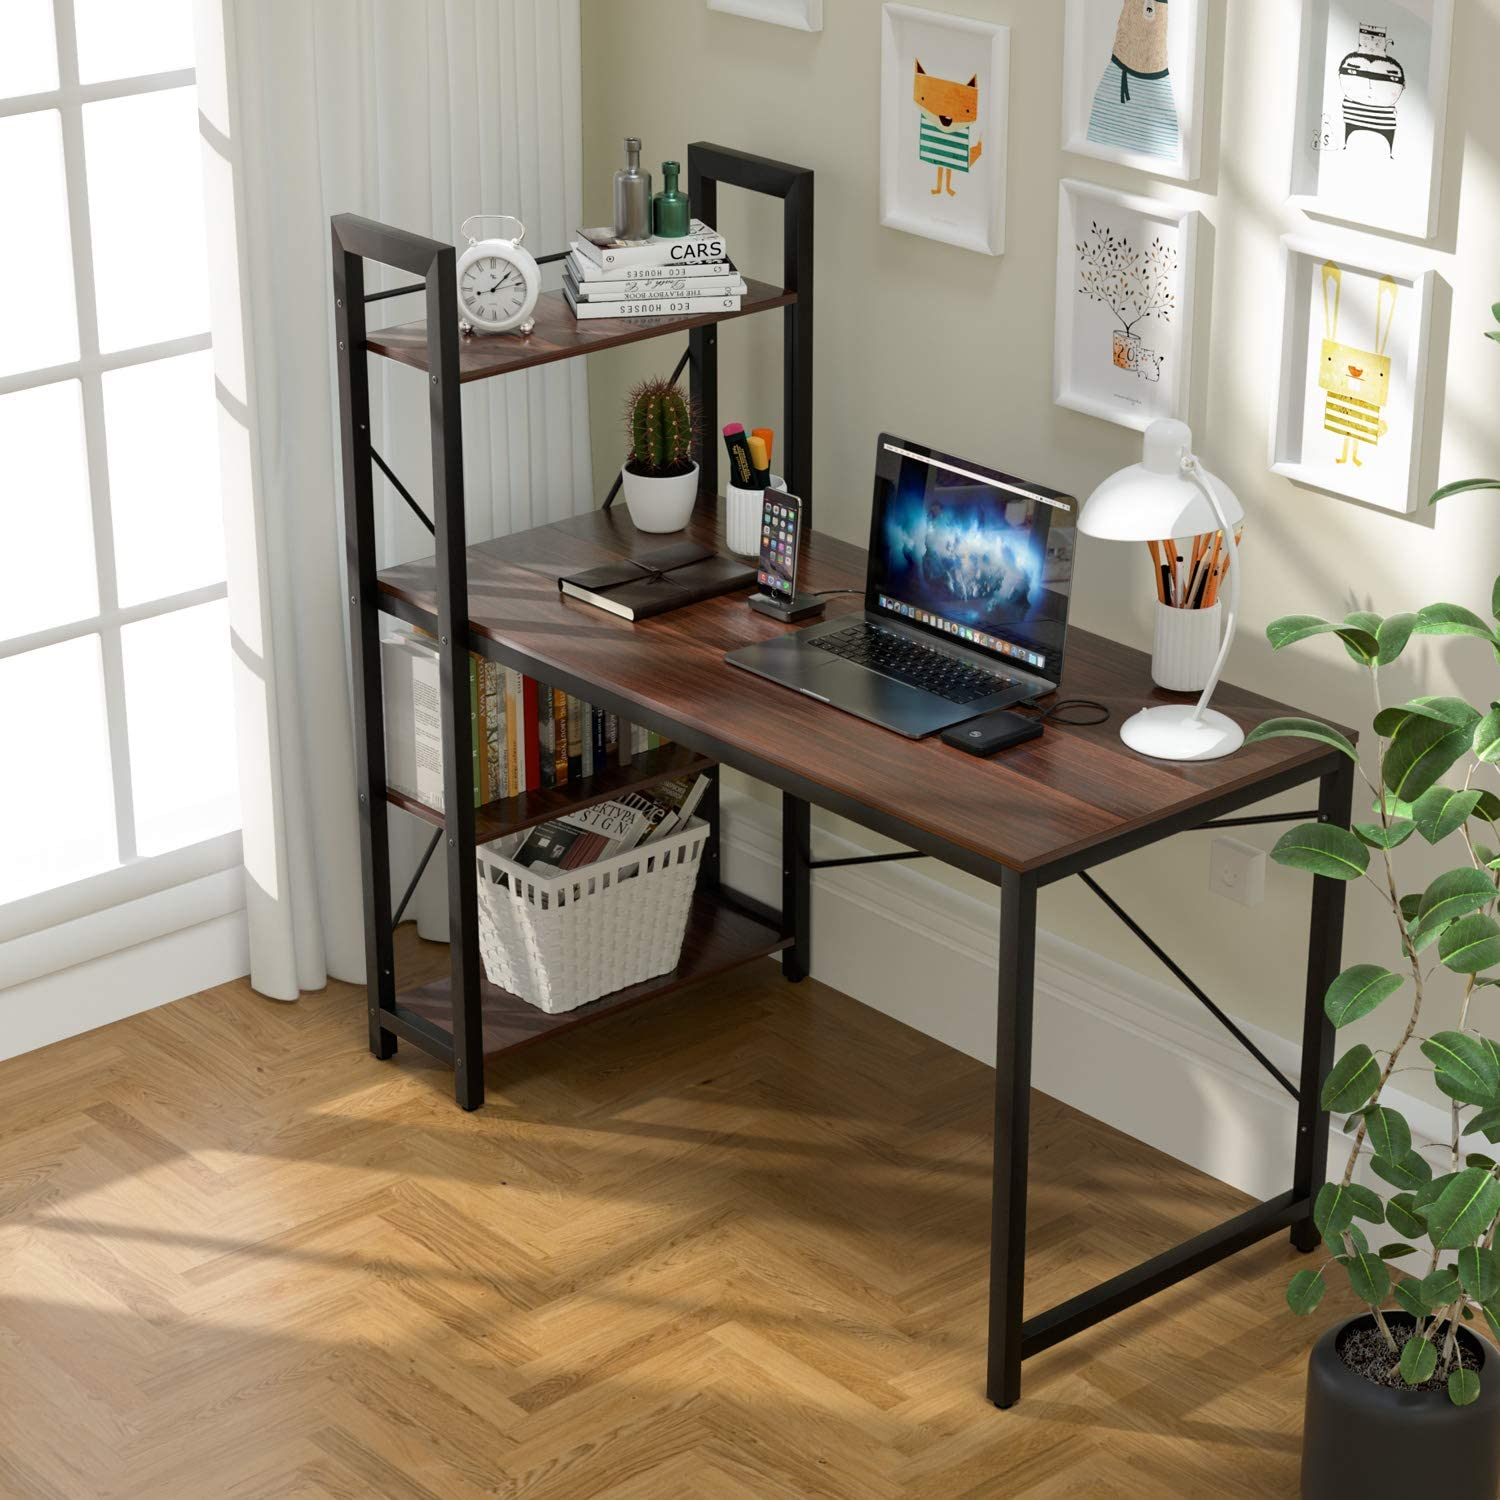 VADIM Computer Desk with Shelves, Modern Office Desk with 4-Tier Shelf, Durable Working Desk for Home, Bedroom, Office, Sturdy Writing Table with Storage Bookshelf, 47 Inches, Walnut